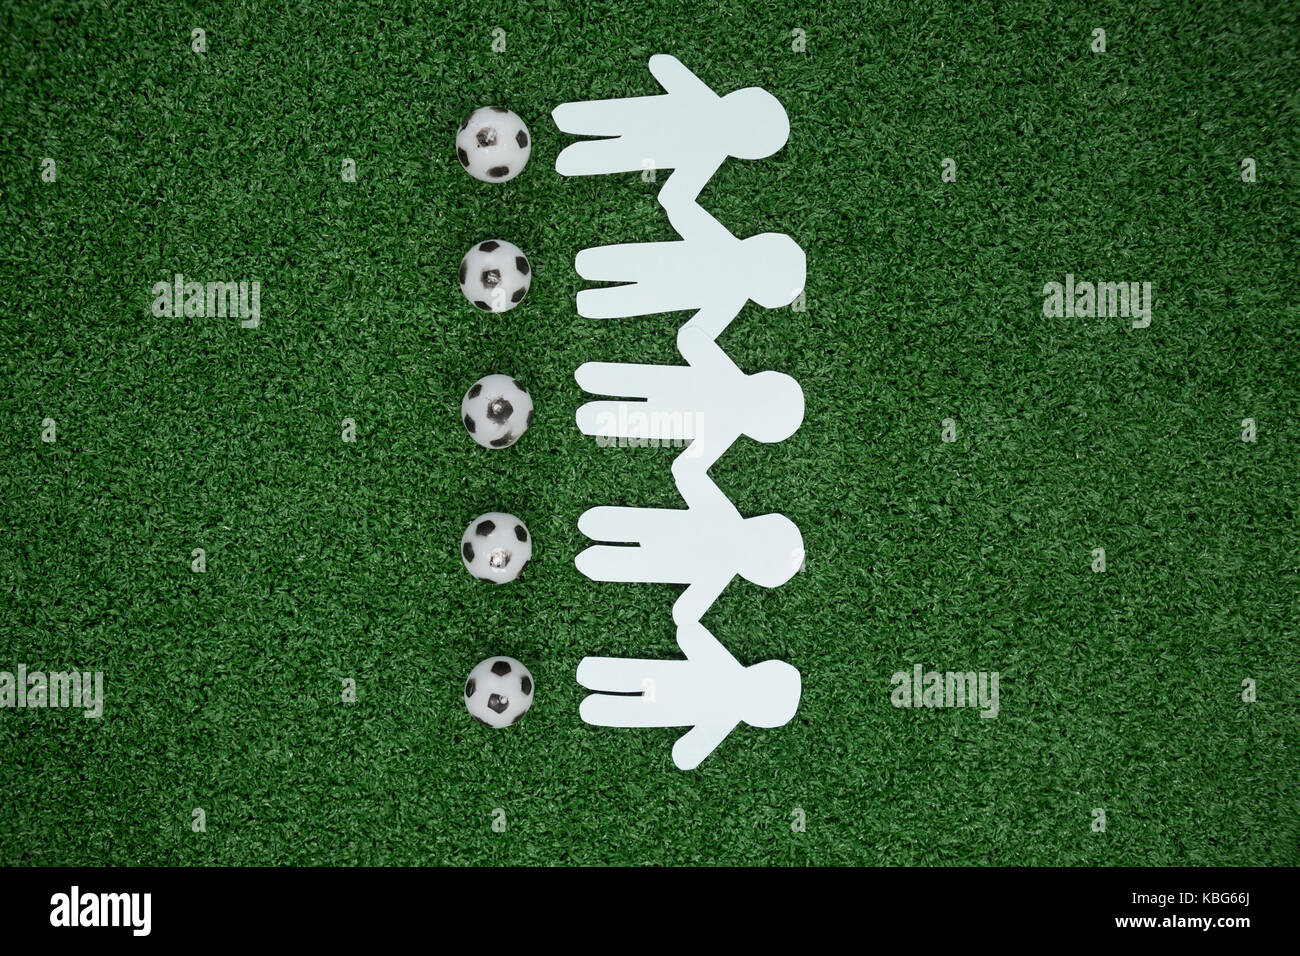 Overhead view of paper cut outs and footballs arranged on artificial grass - Stock Image